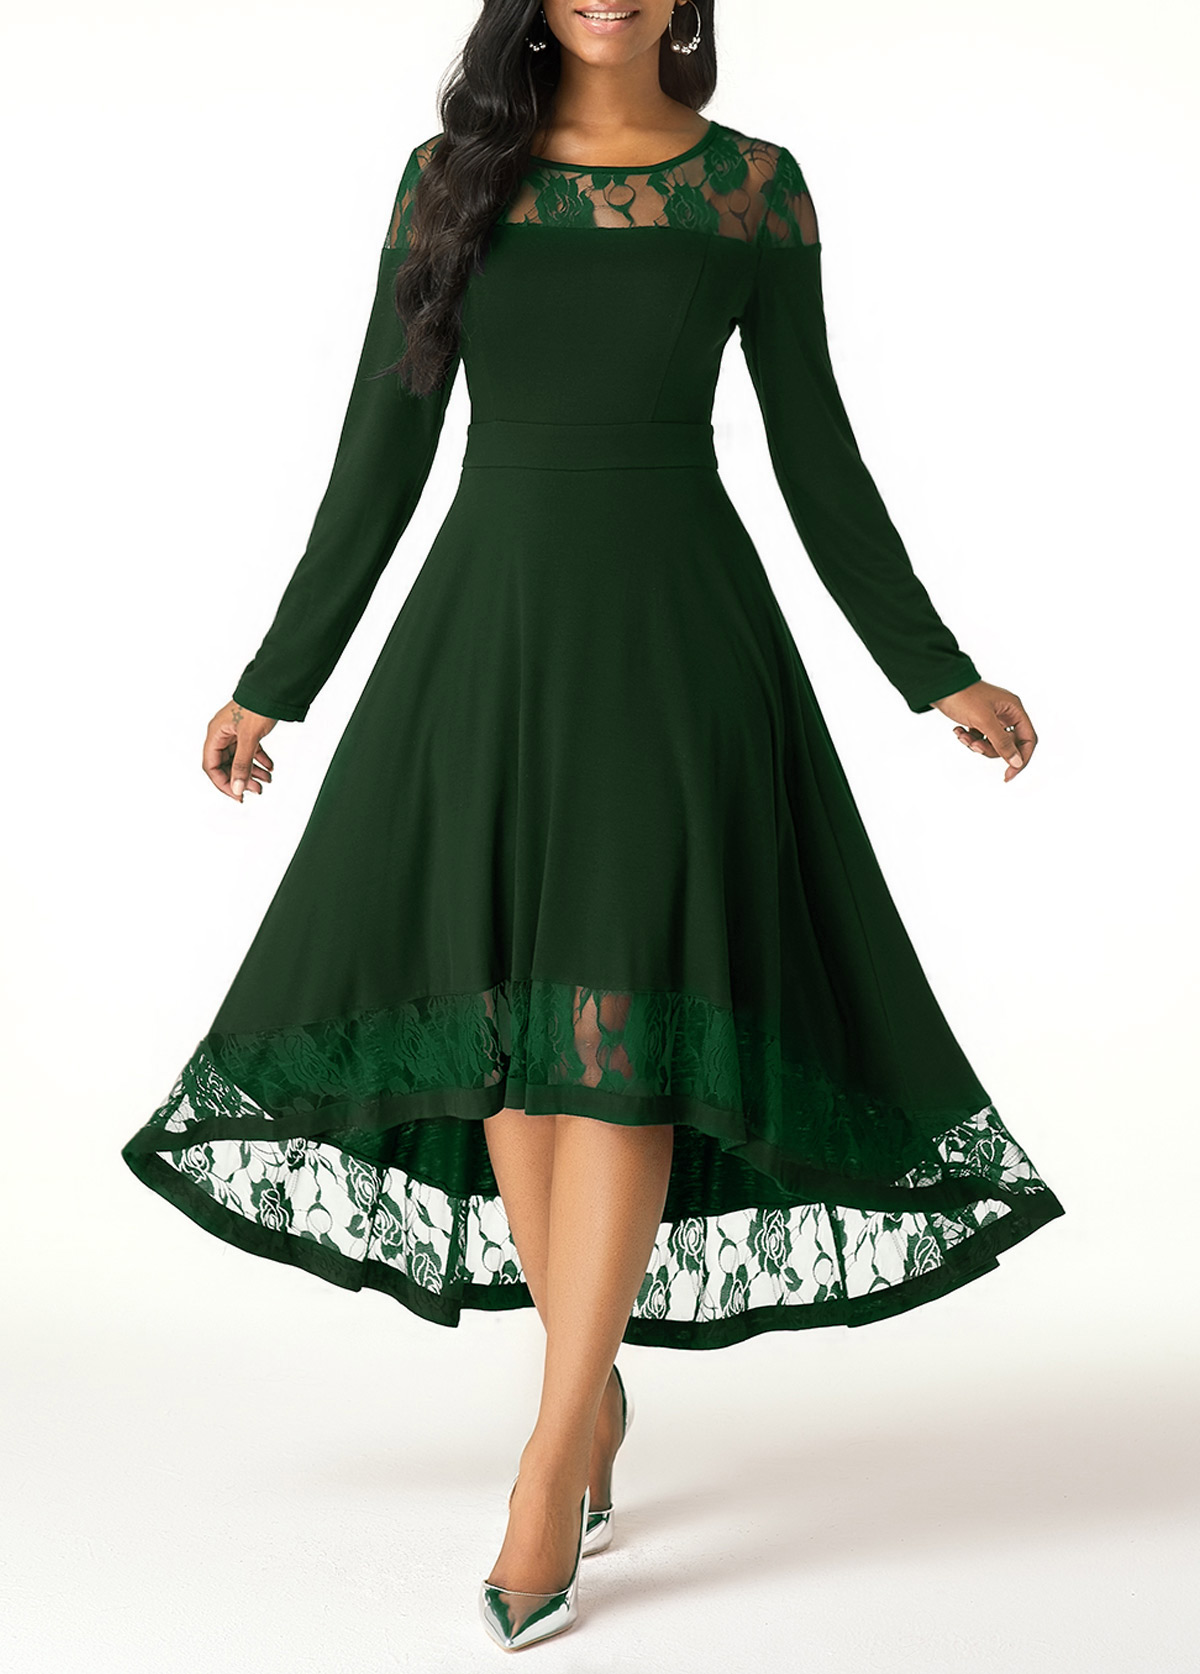 Lace Panel Long Sleeve Green High Low Dress